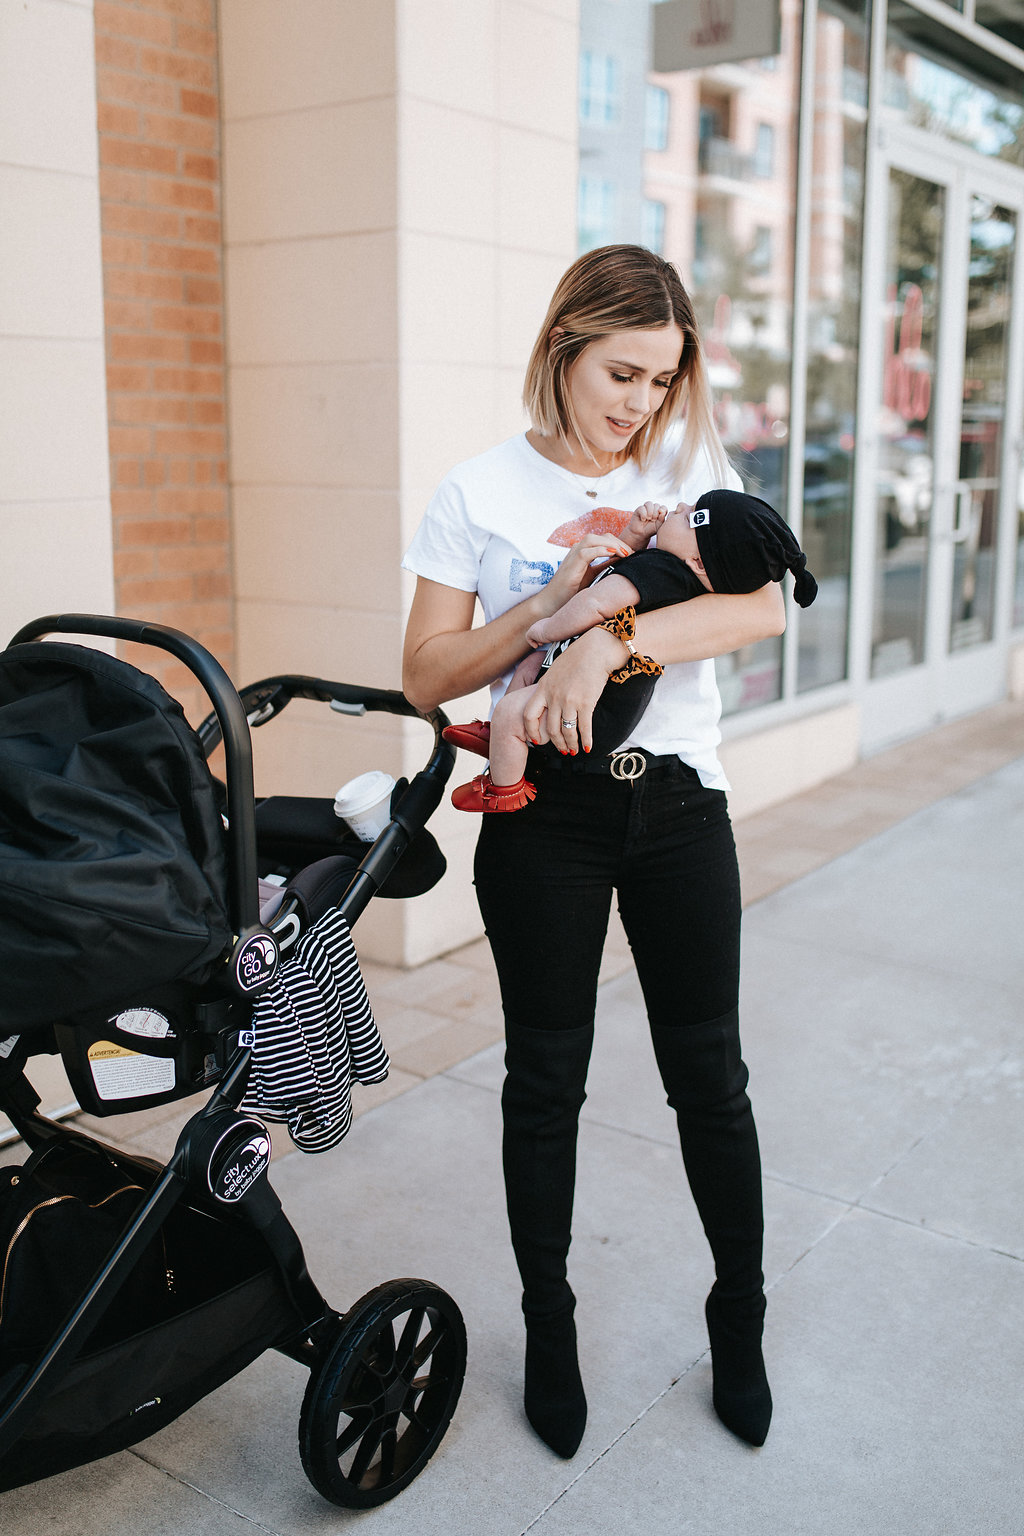 City Select Lux Stroller | Mommy and Me outfit | Uptown with Elly Brown